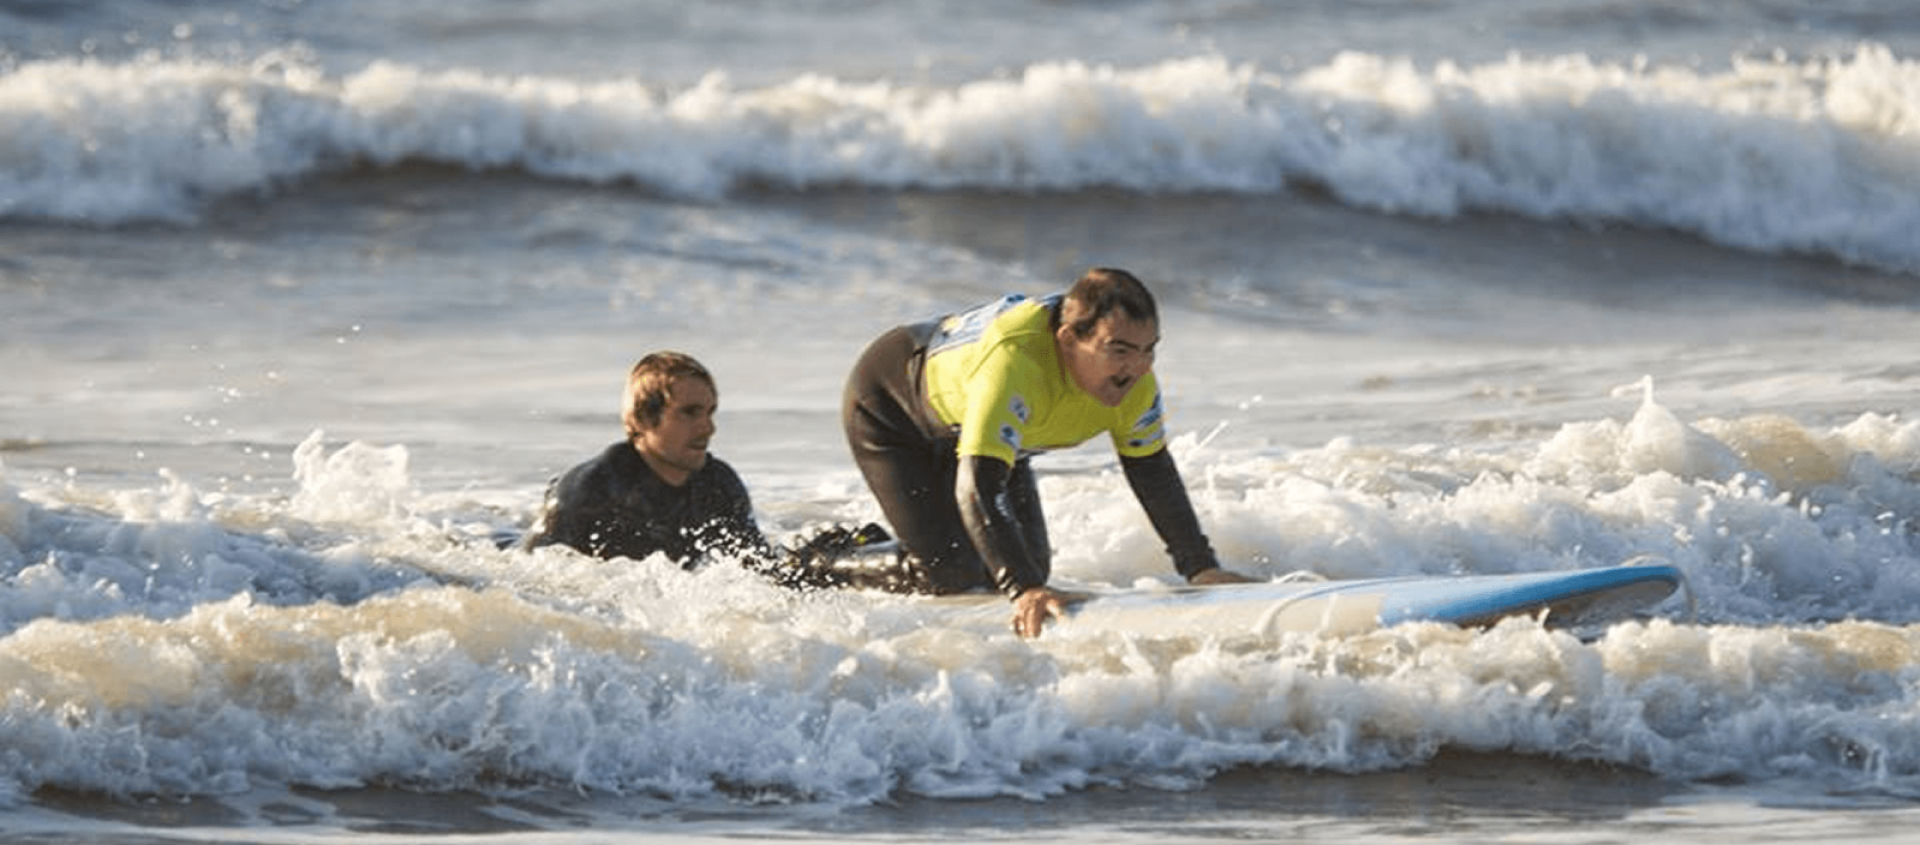 Men trying to surf